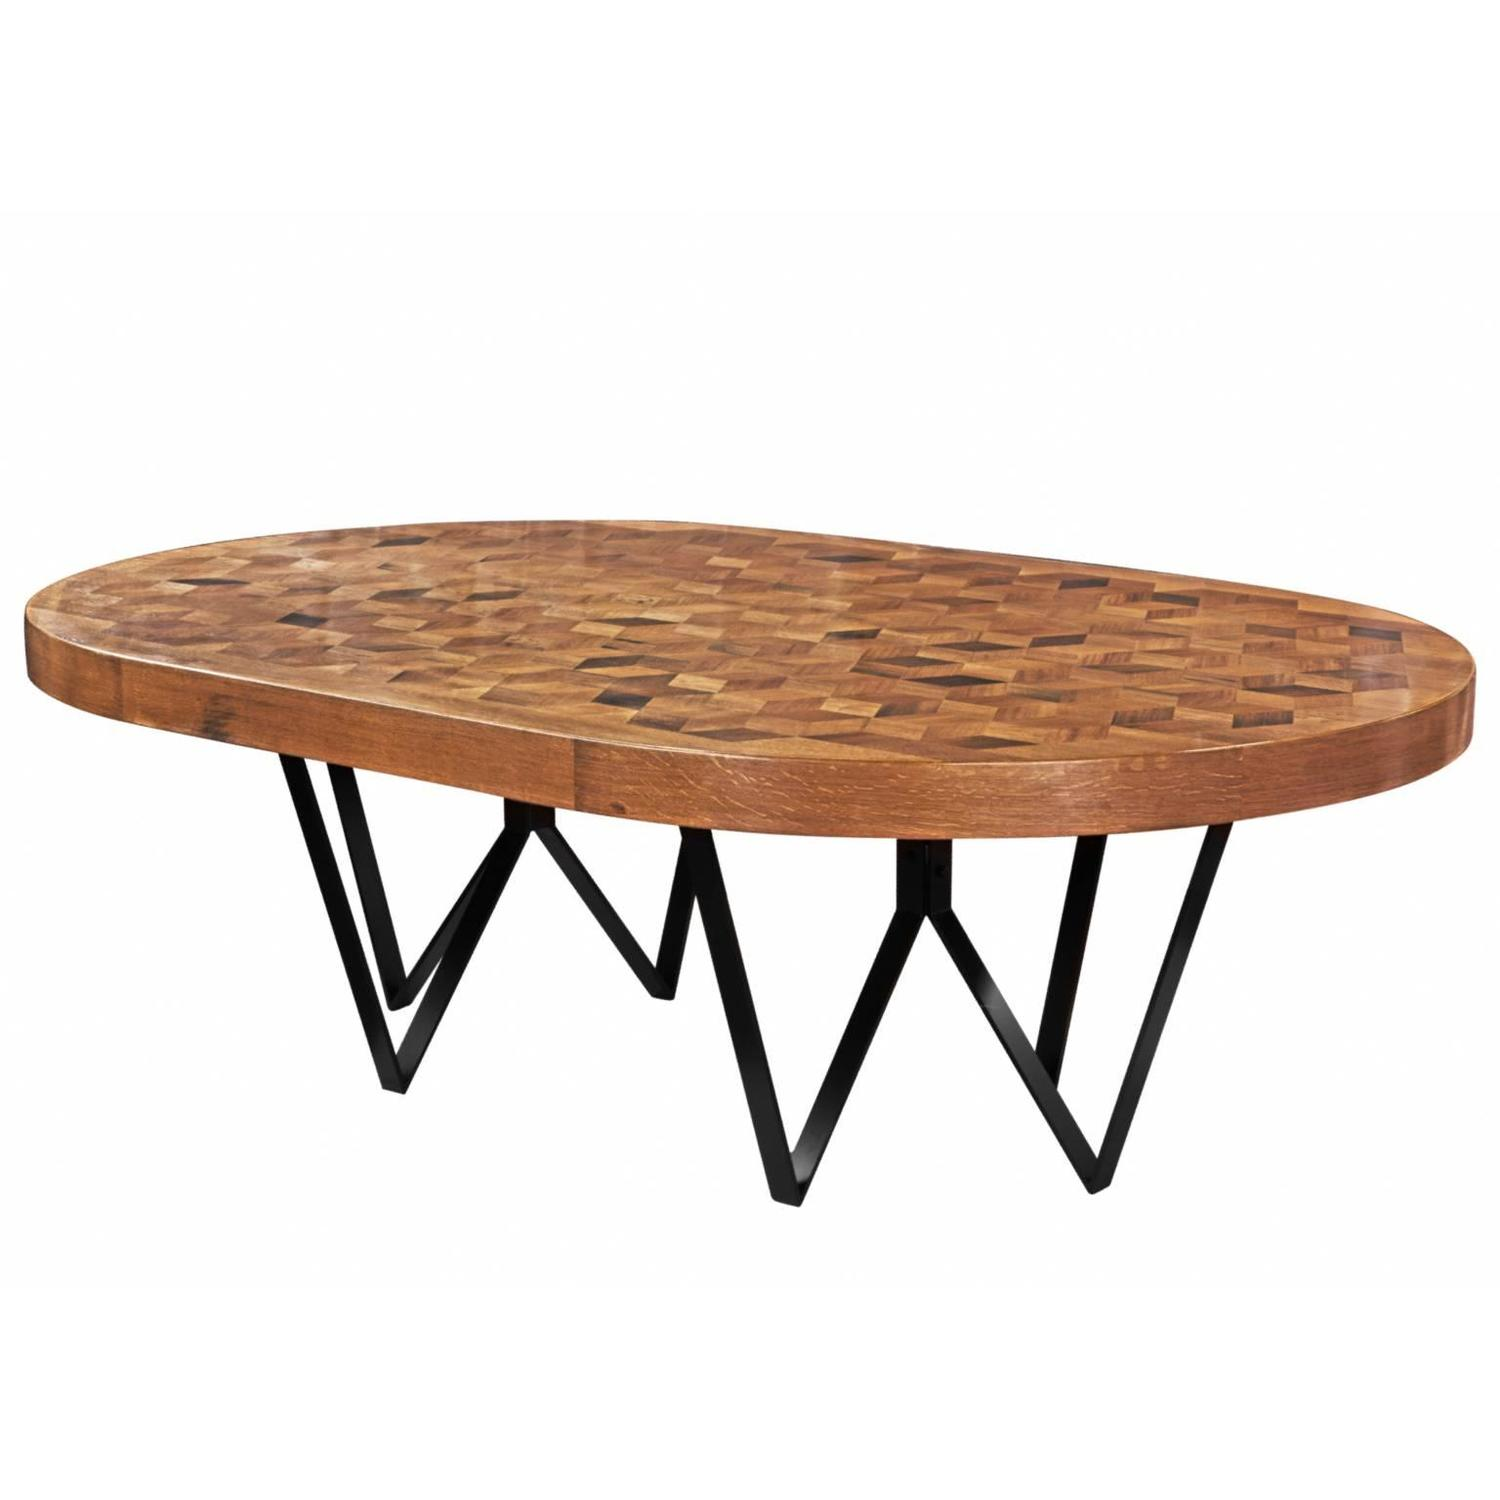 Maurits Oval Marquetry Table In Reclaimed Oak From Old Italian Wine Barrels  For Sale At 1stdibs